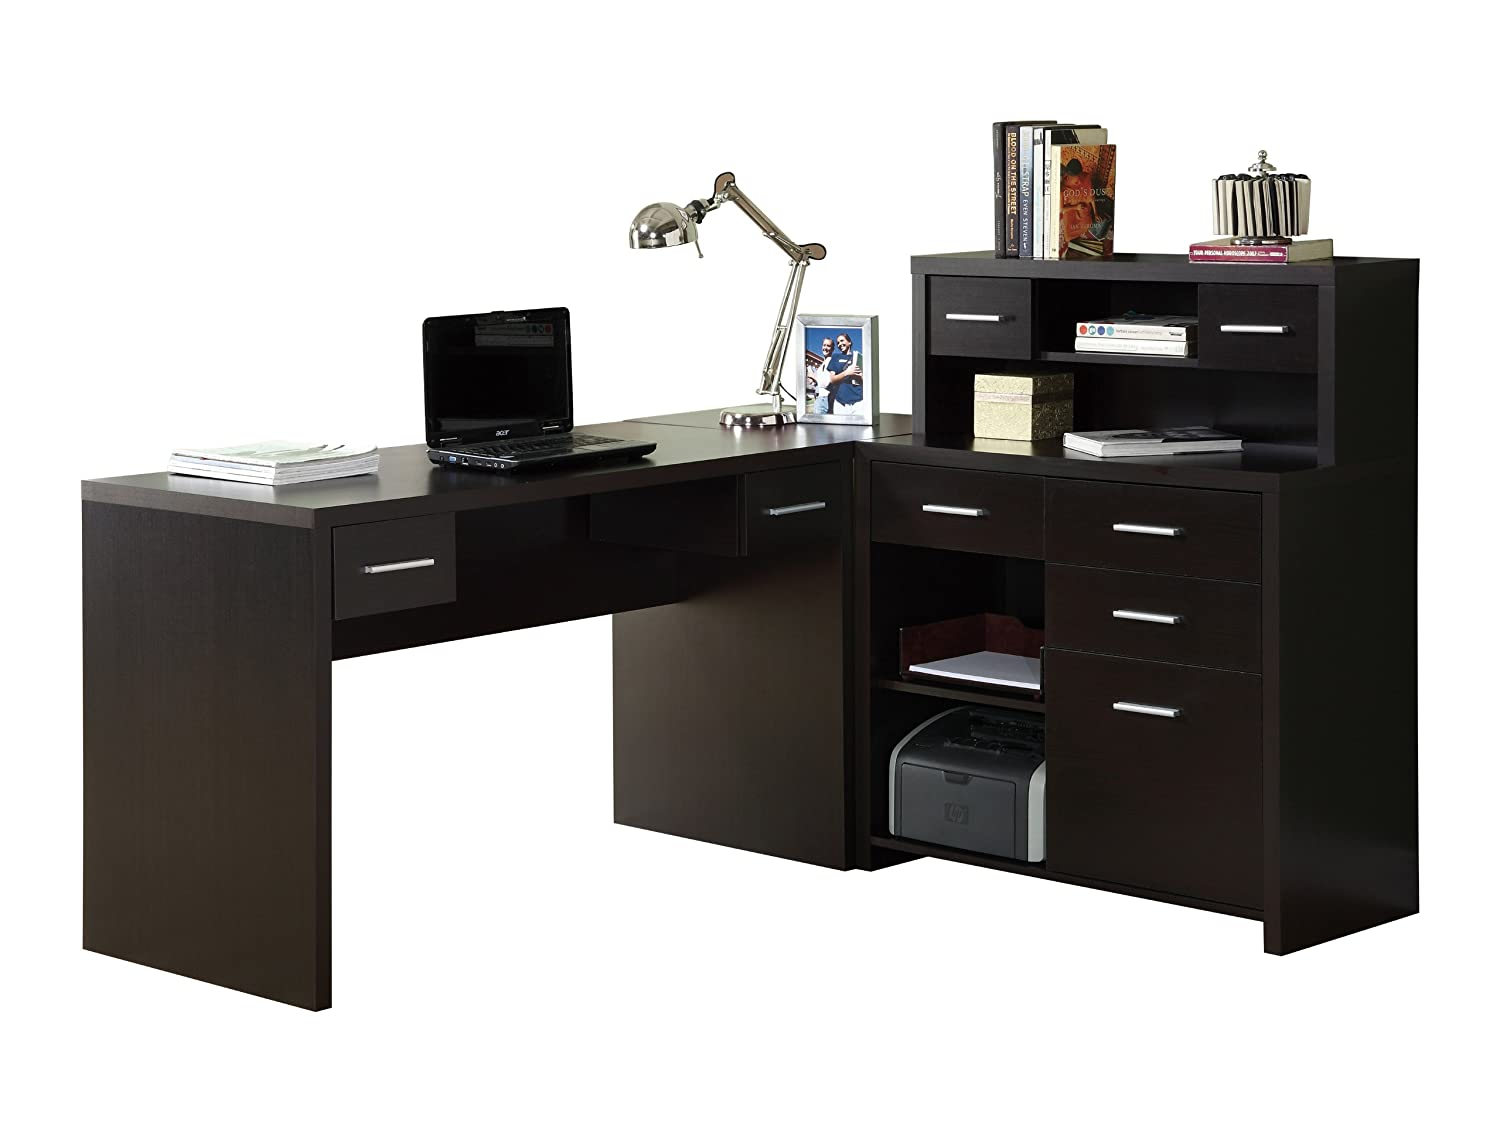 using swivel also rectangular and l leather inspiring office com cabinets black chairs desk ideas liltigertoo wood decorating brown with beautiful wooden modern contemporary shape desks shaped design furniture interior shocking